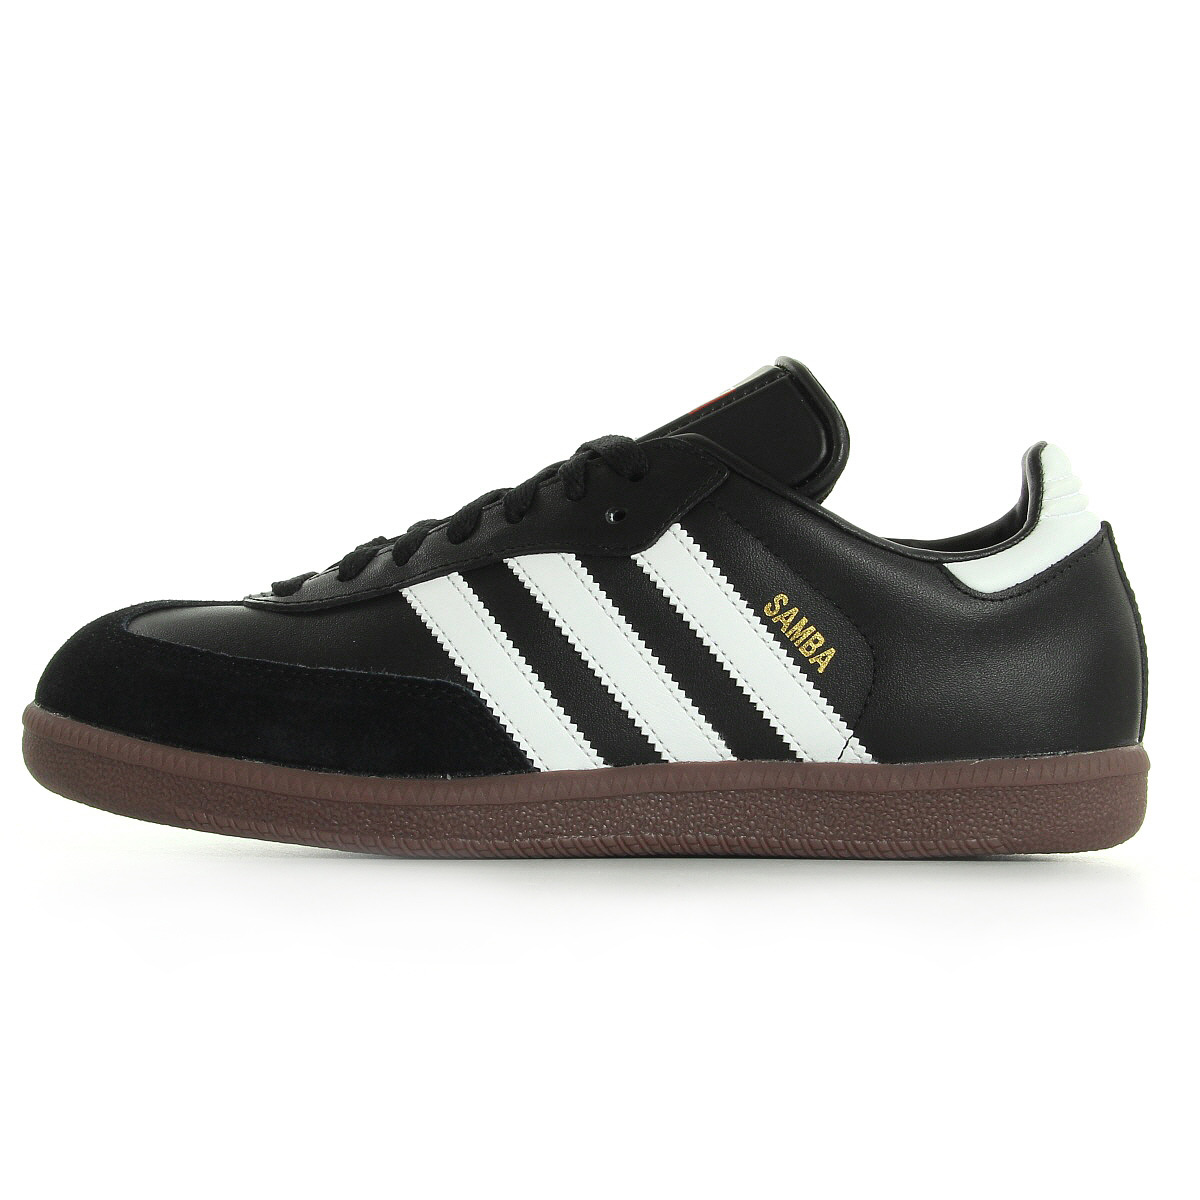 chaussures baskets adidas homme samba taille noir noire cuir lacets ebay. Black Bedroom Furniture Sets. Home Design Ideas